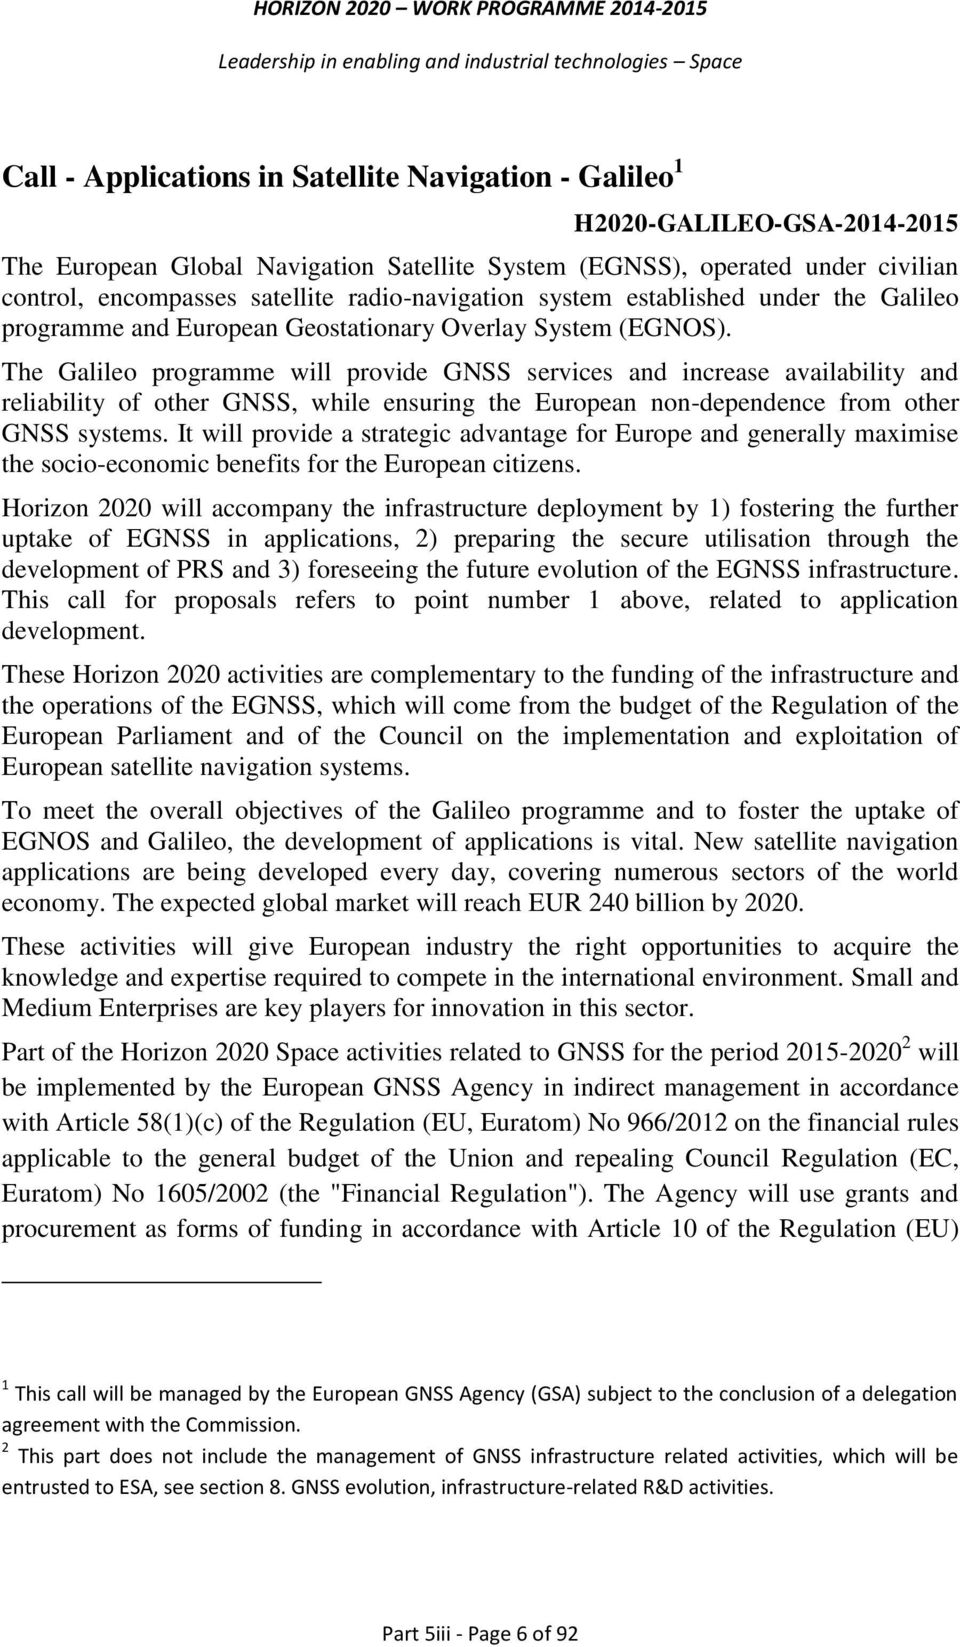 The Galileo programme will provide GNSS services and increase availability and reliability of other GNSS, while ensuring the European non-dependence from other GNSS systems.